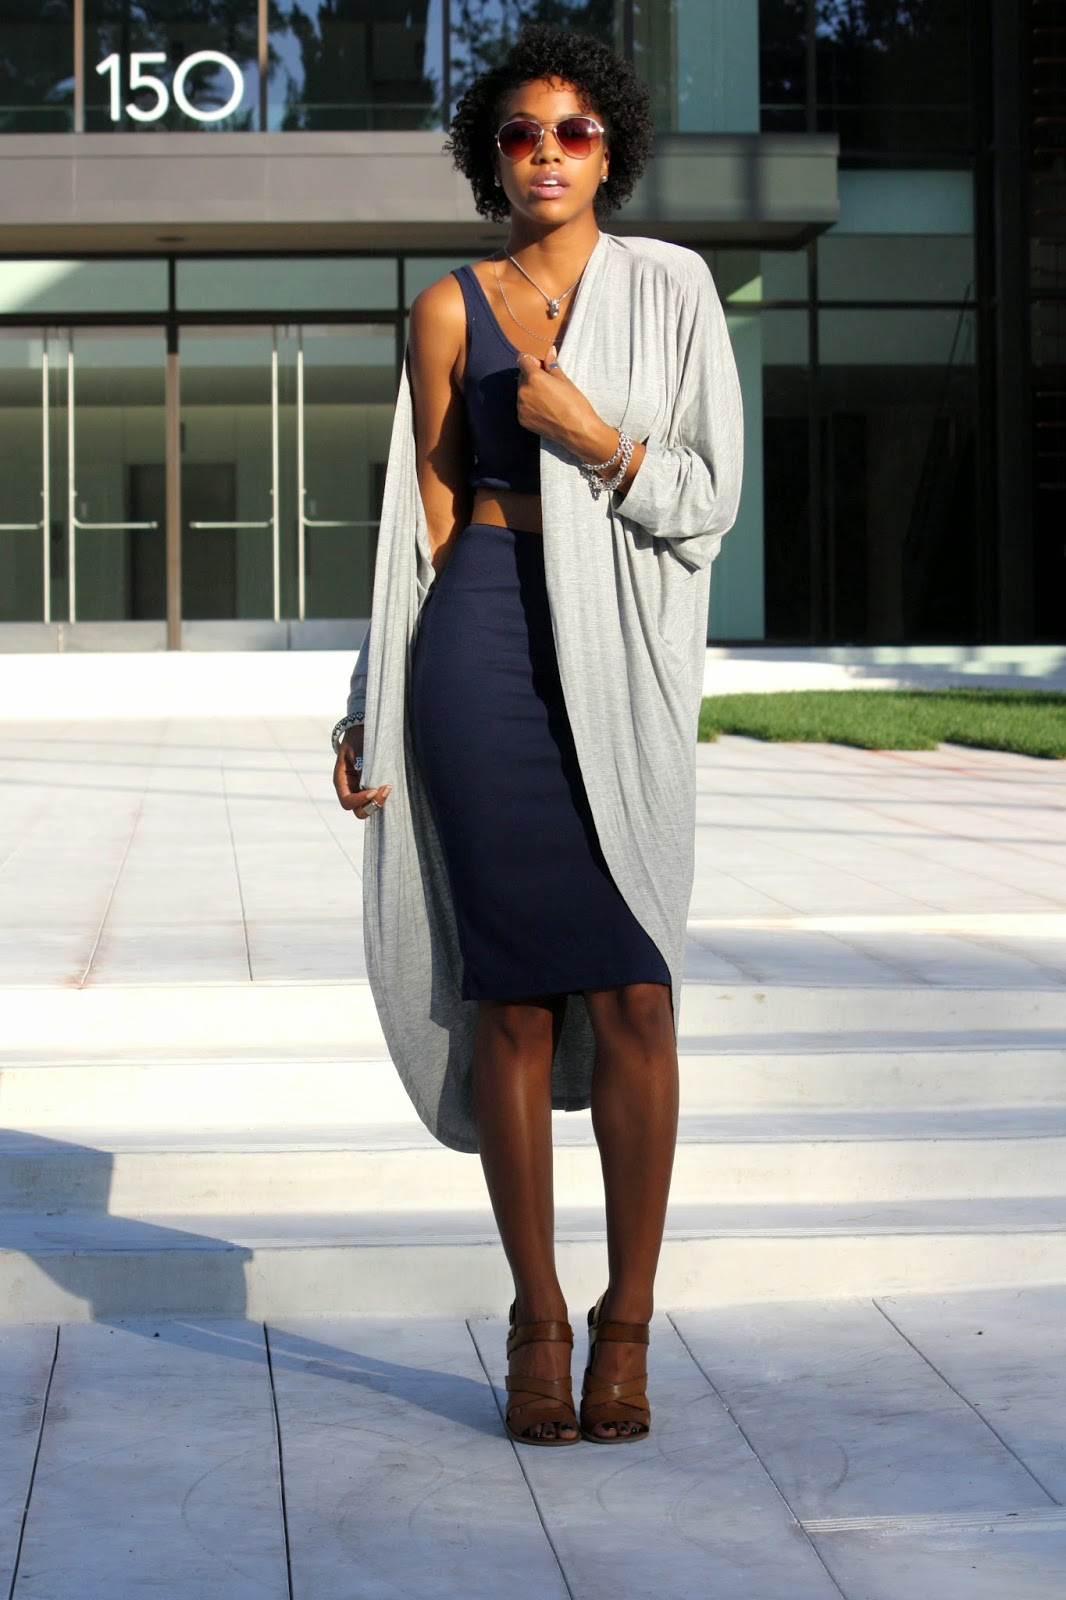 fashion personal style blogger Marquise C Brown Honey In My Heels